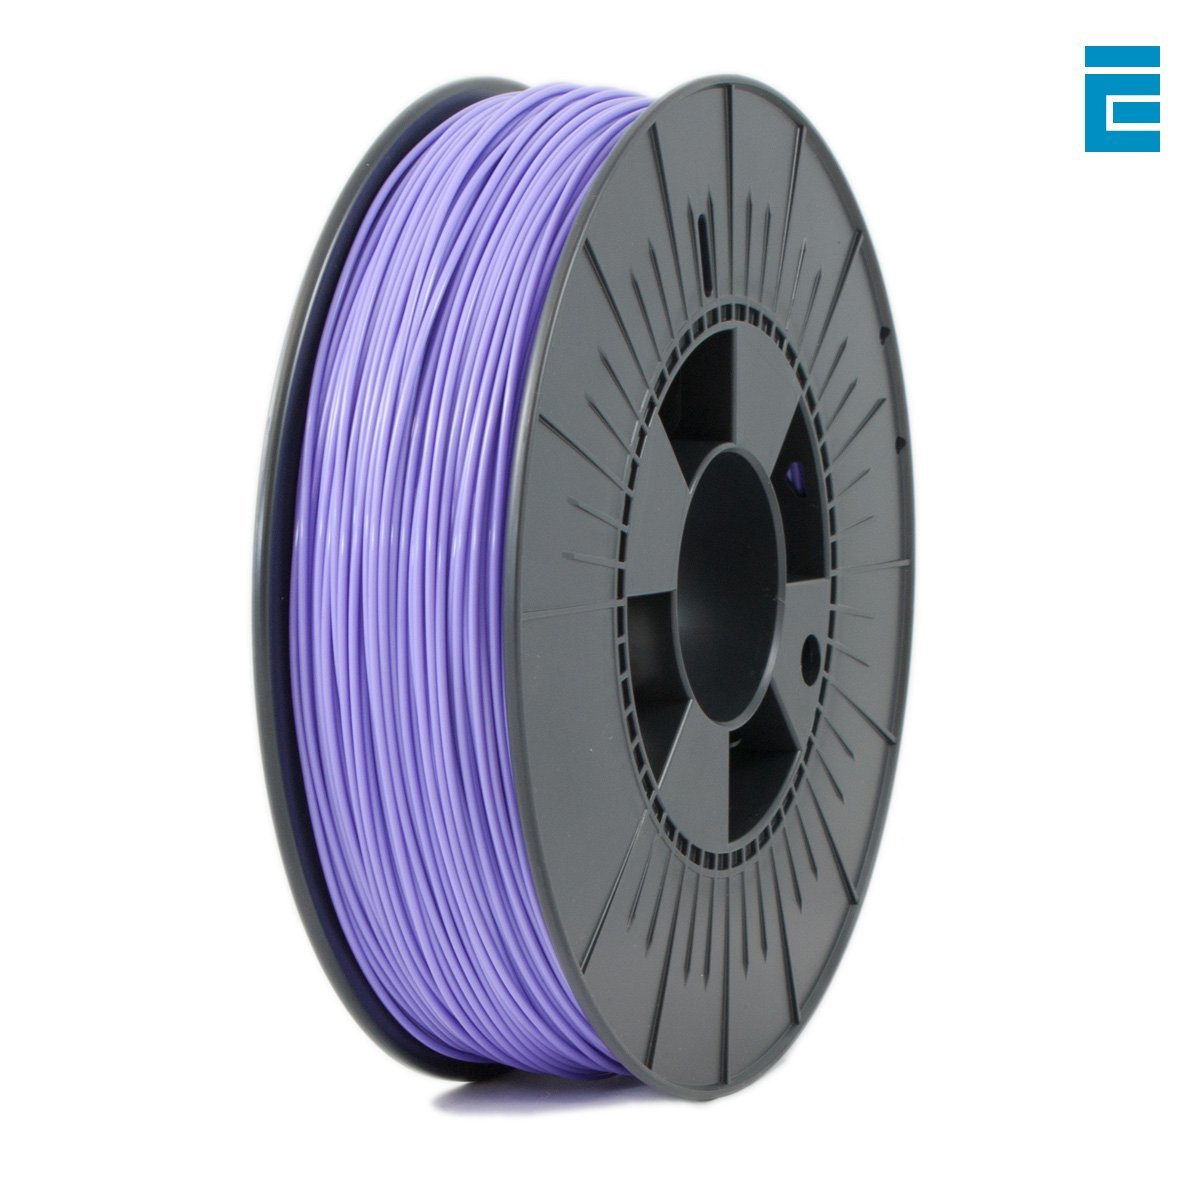 ICE FILAMENTS ICEFIL1PLA017 PLA Filament, 1.75 mm, 0.75 kg, Perky Purple DF